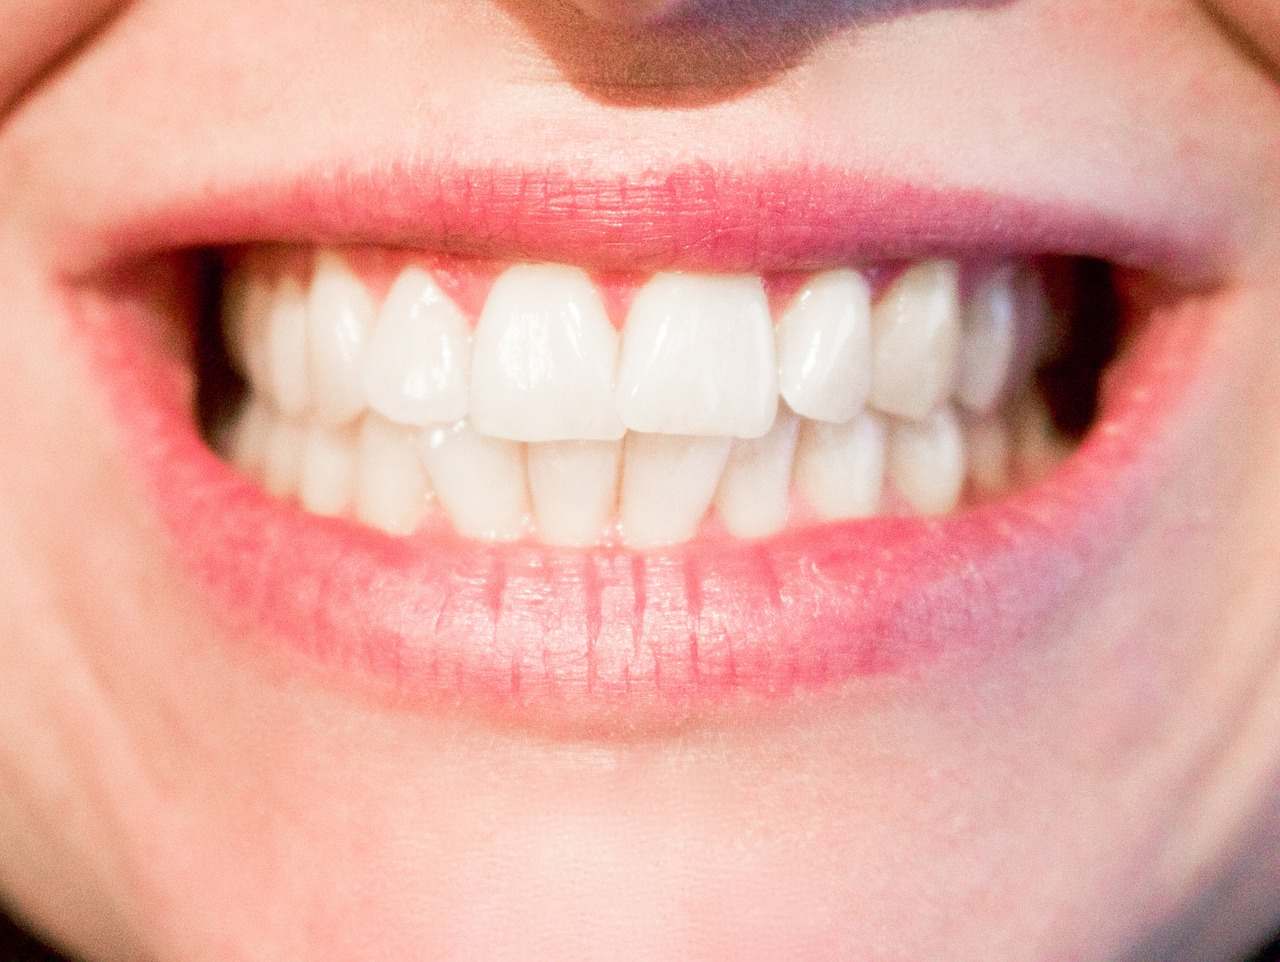 Dental Teeth whitening patient